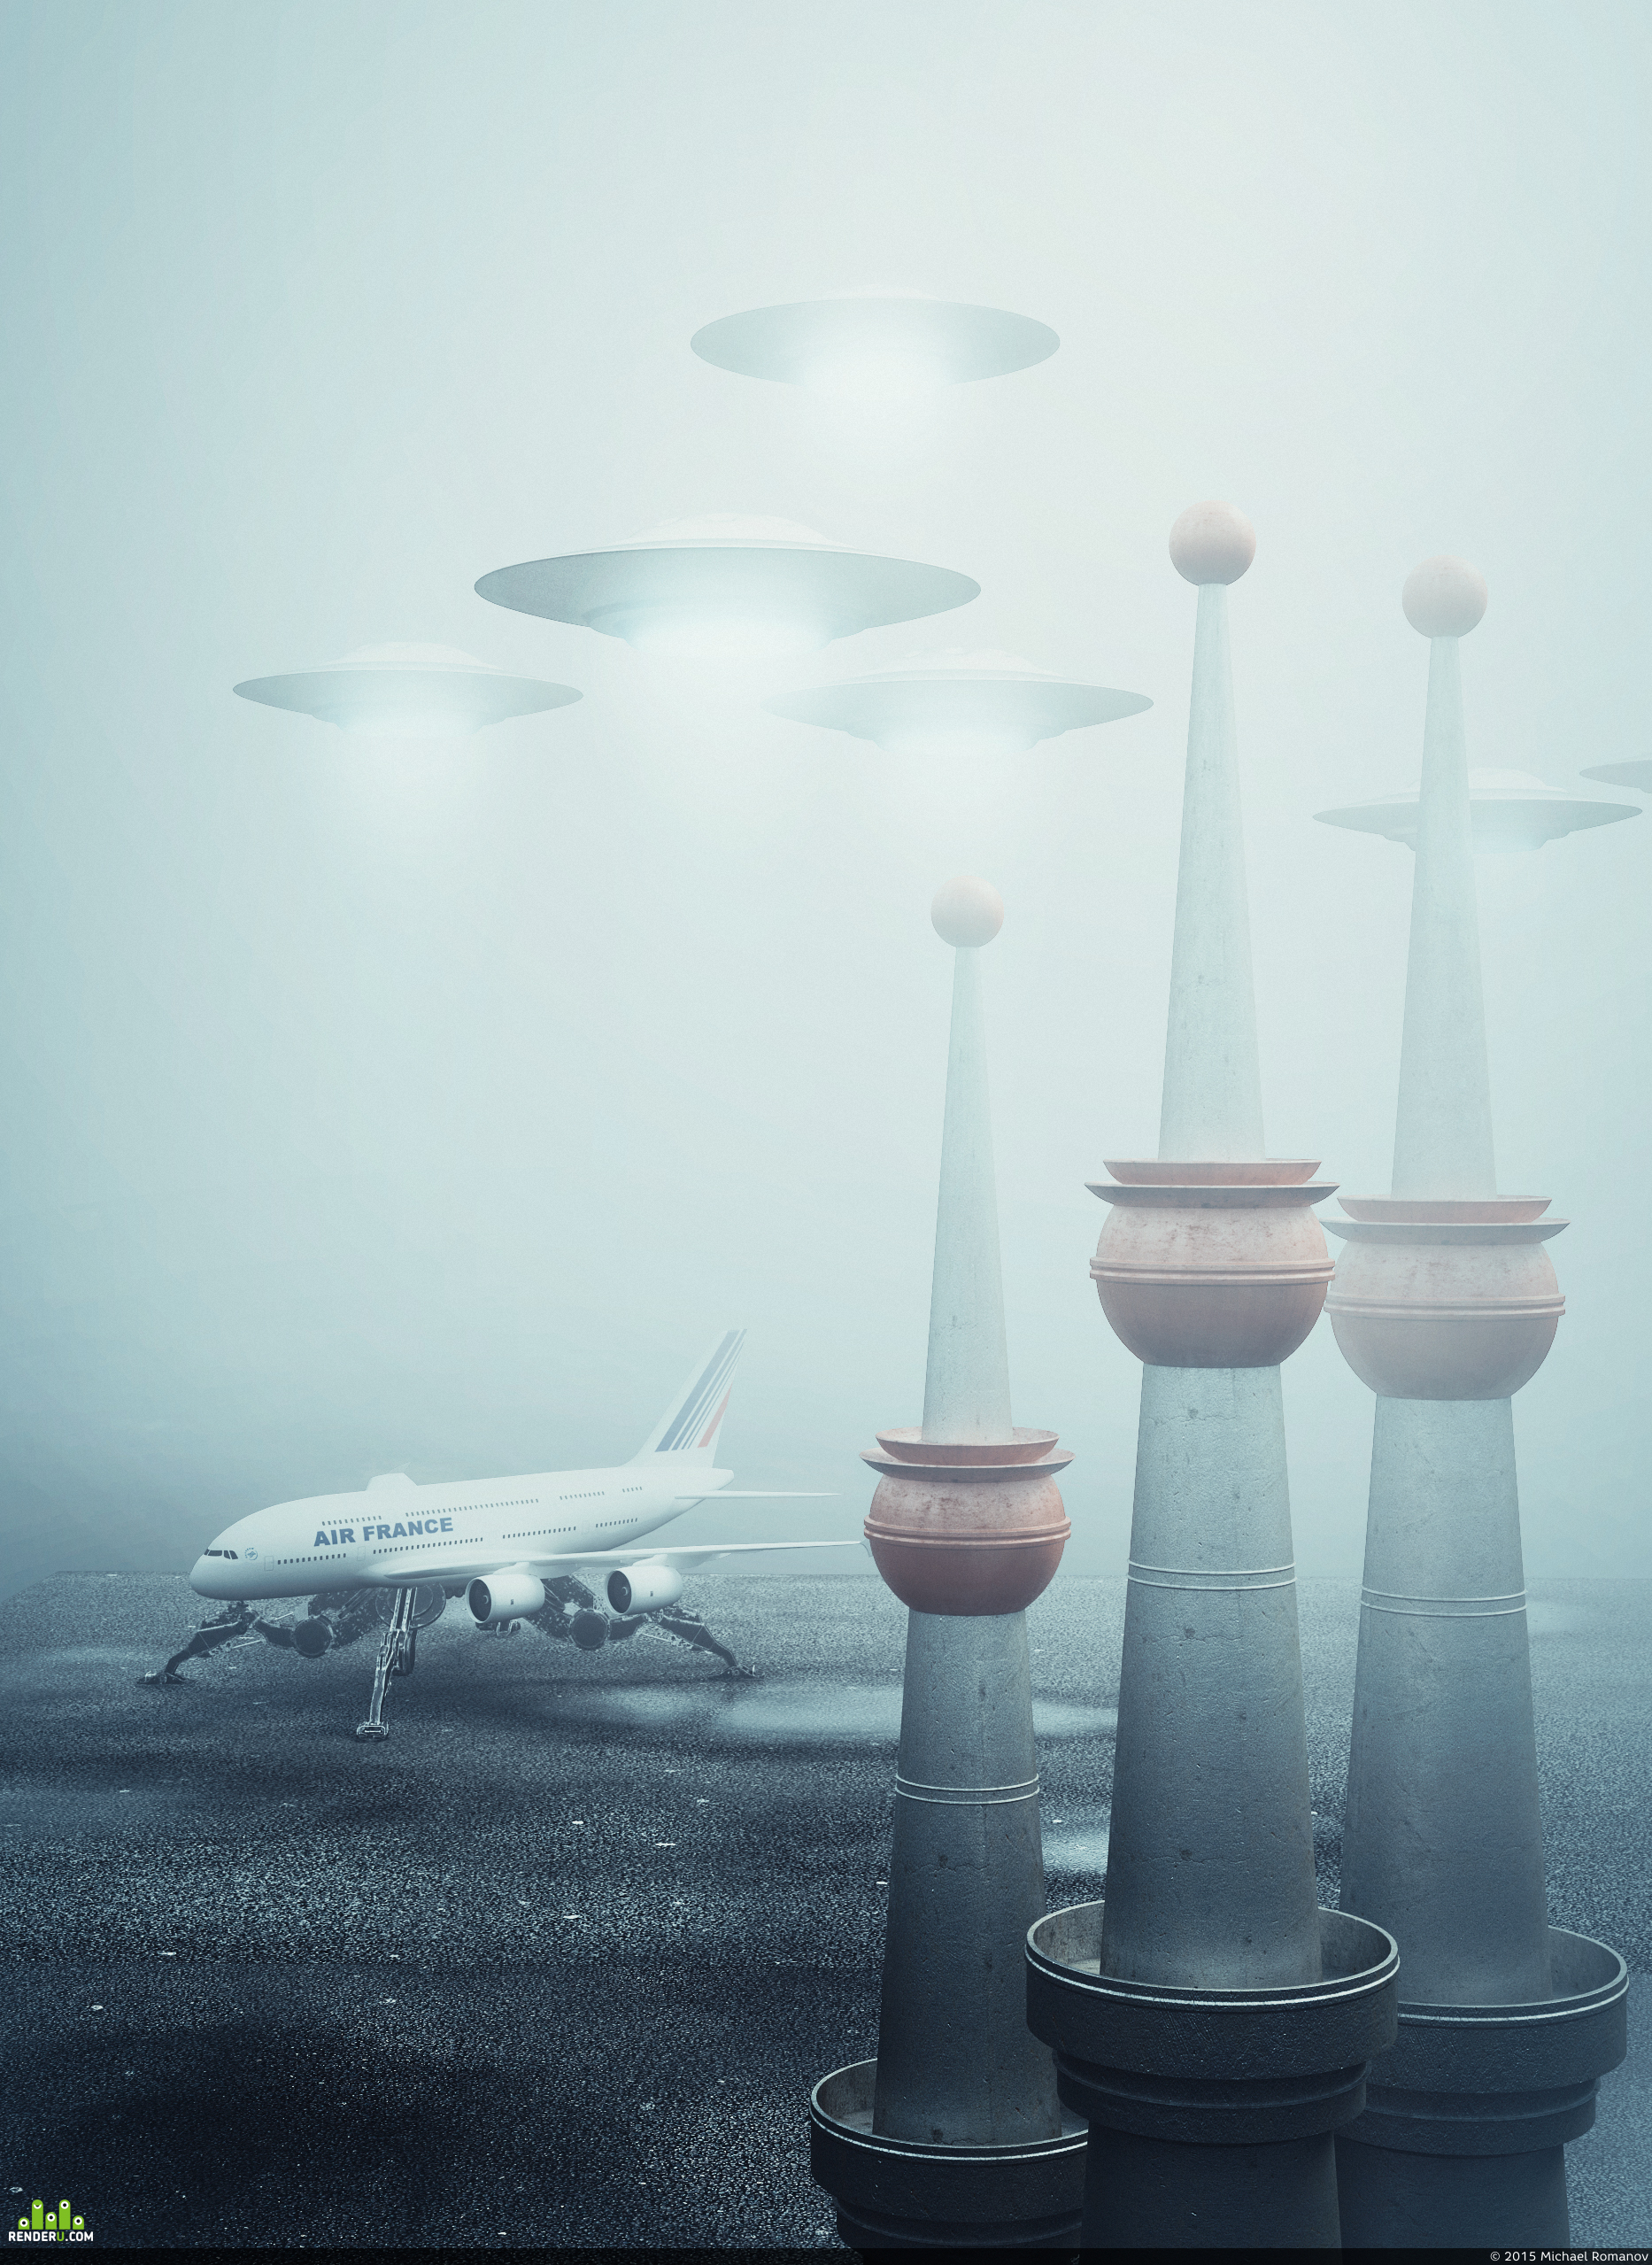 preview Airport in the fog